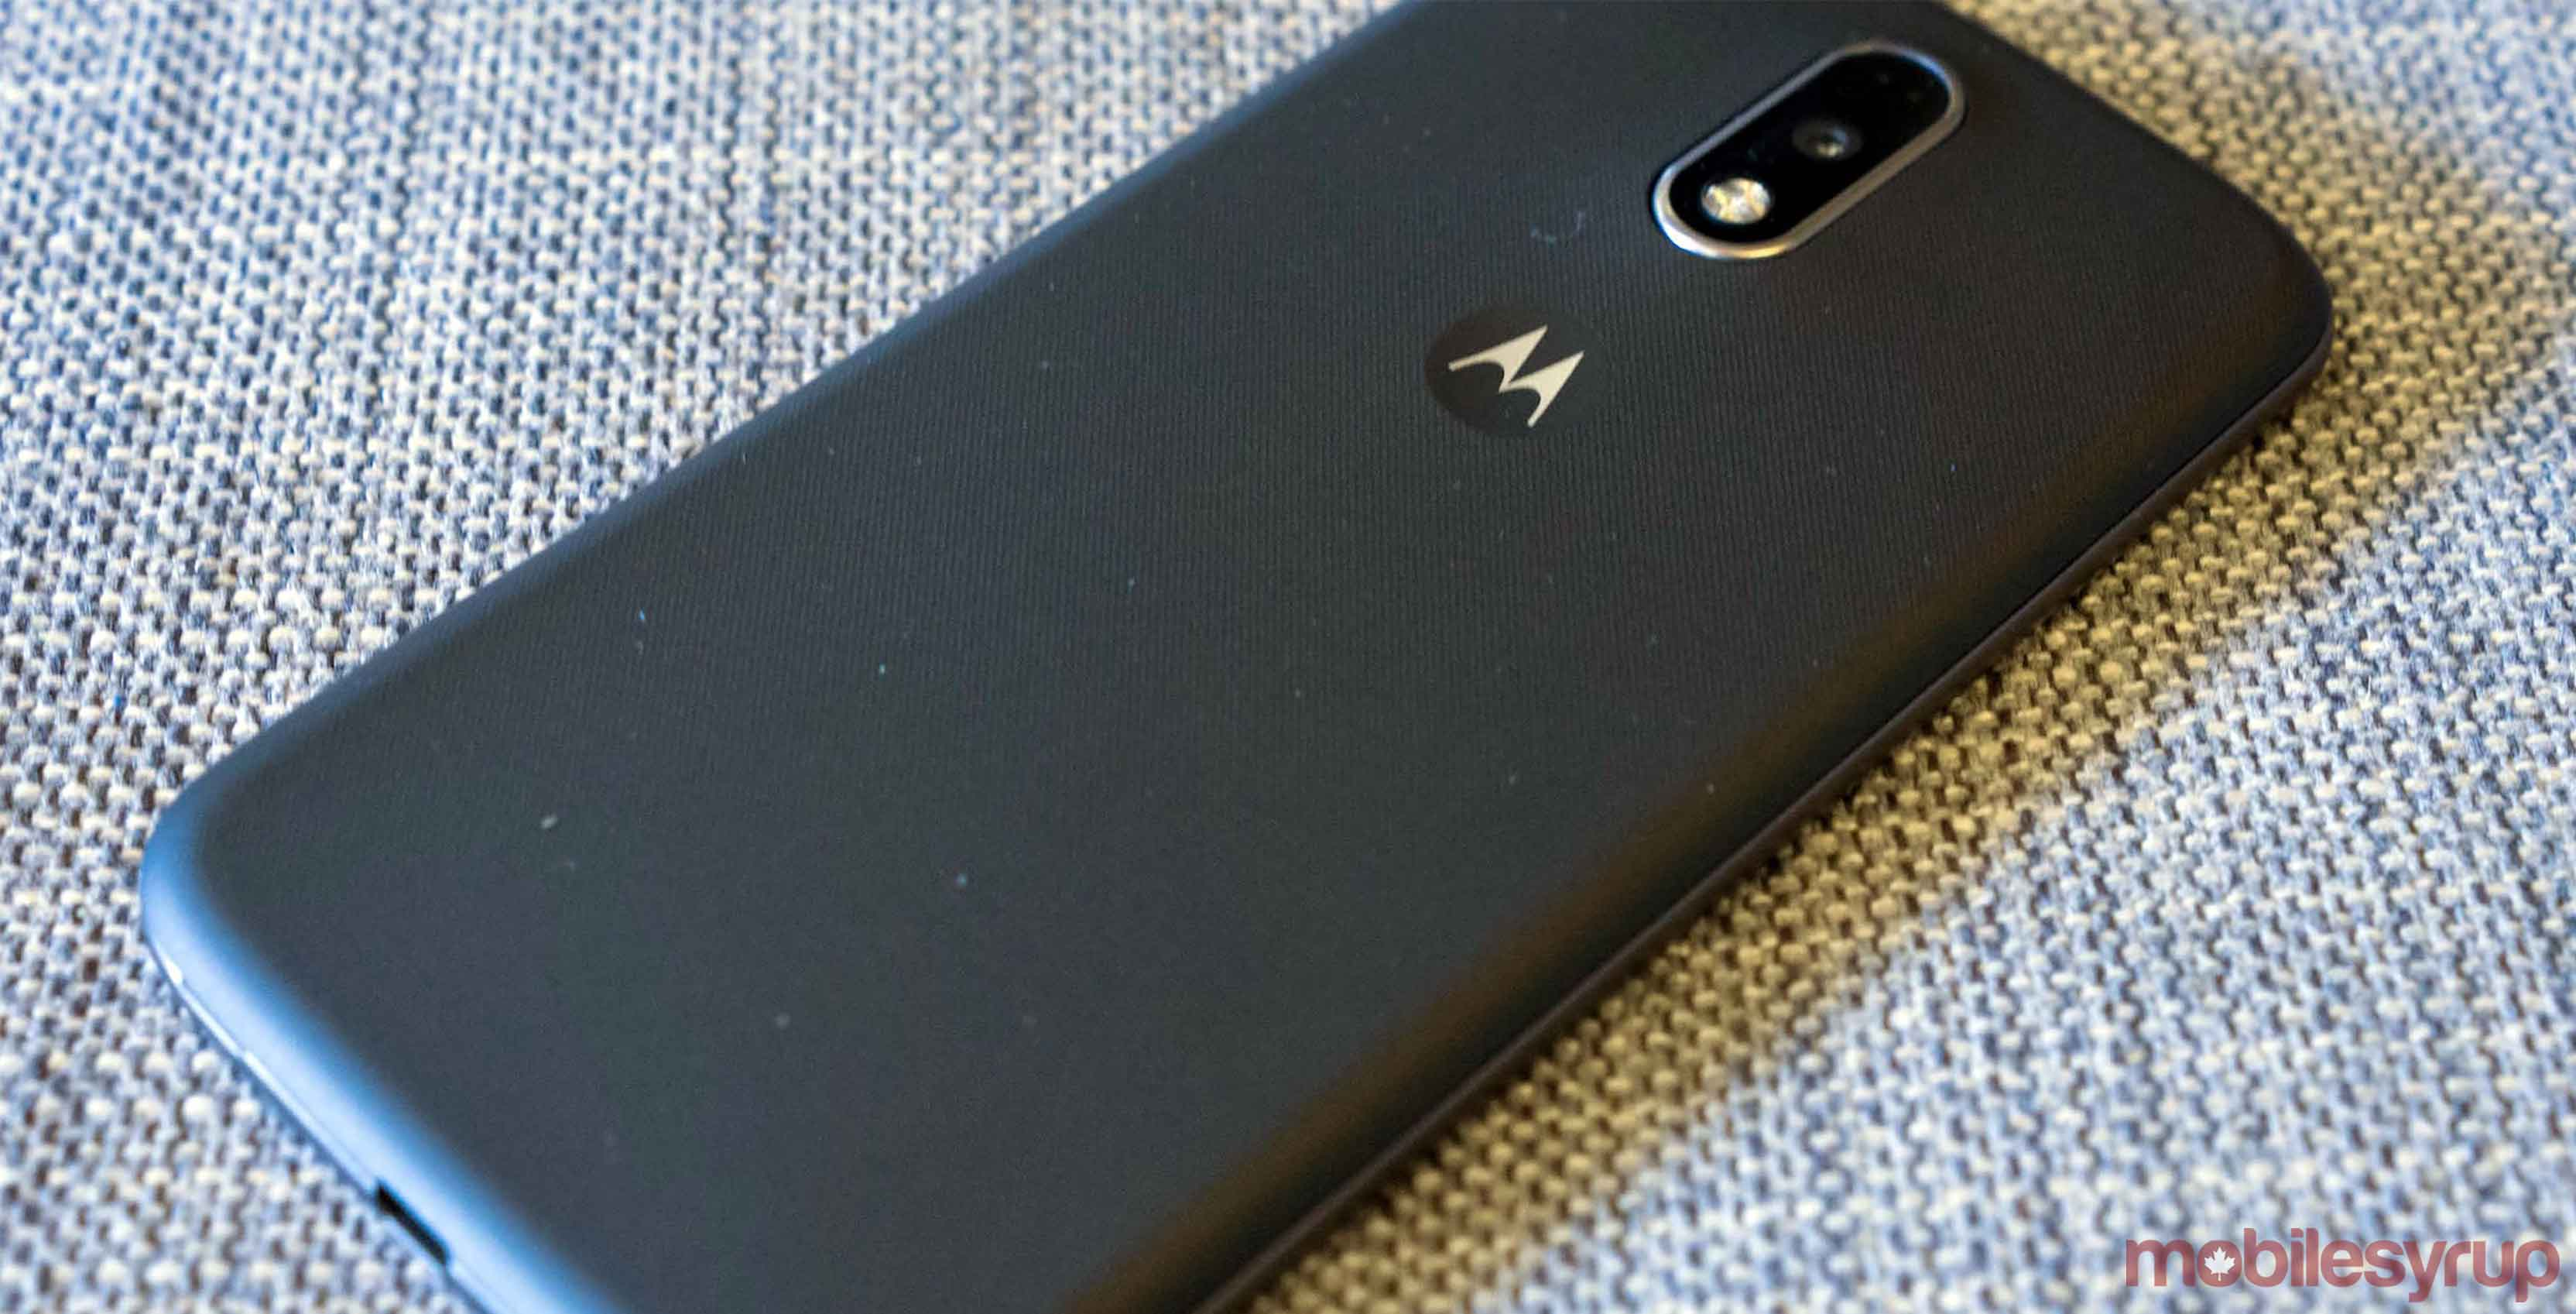 Photo of Motorola's Moto G4 Plus smarphone